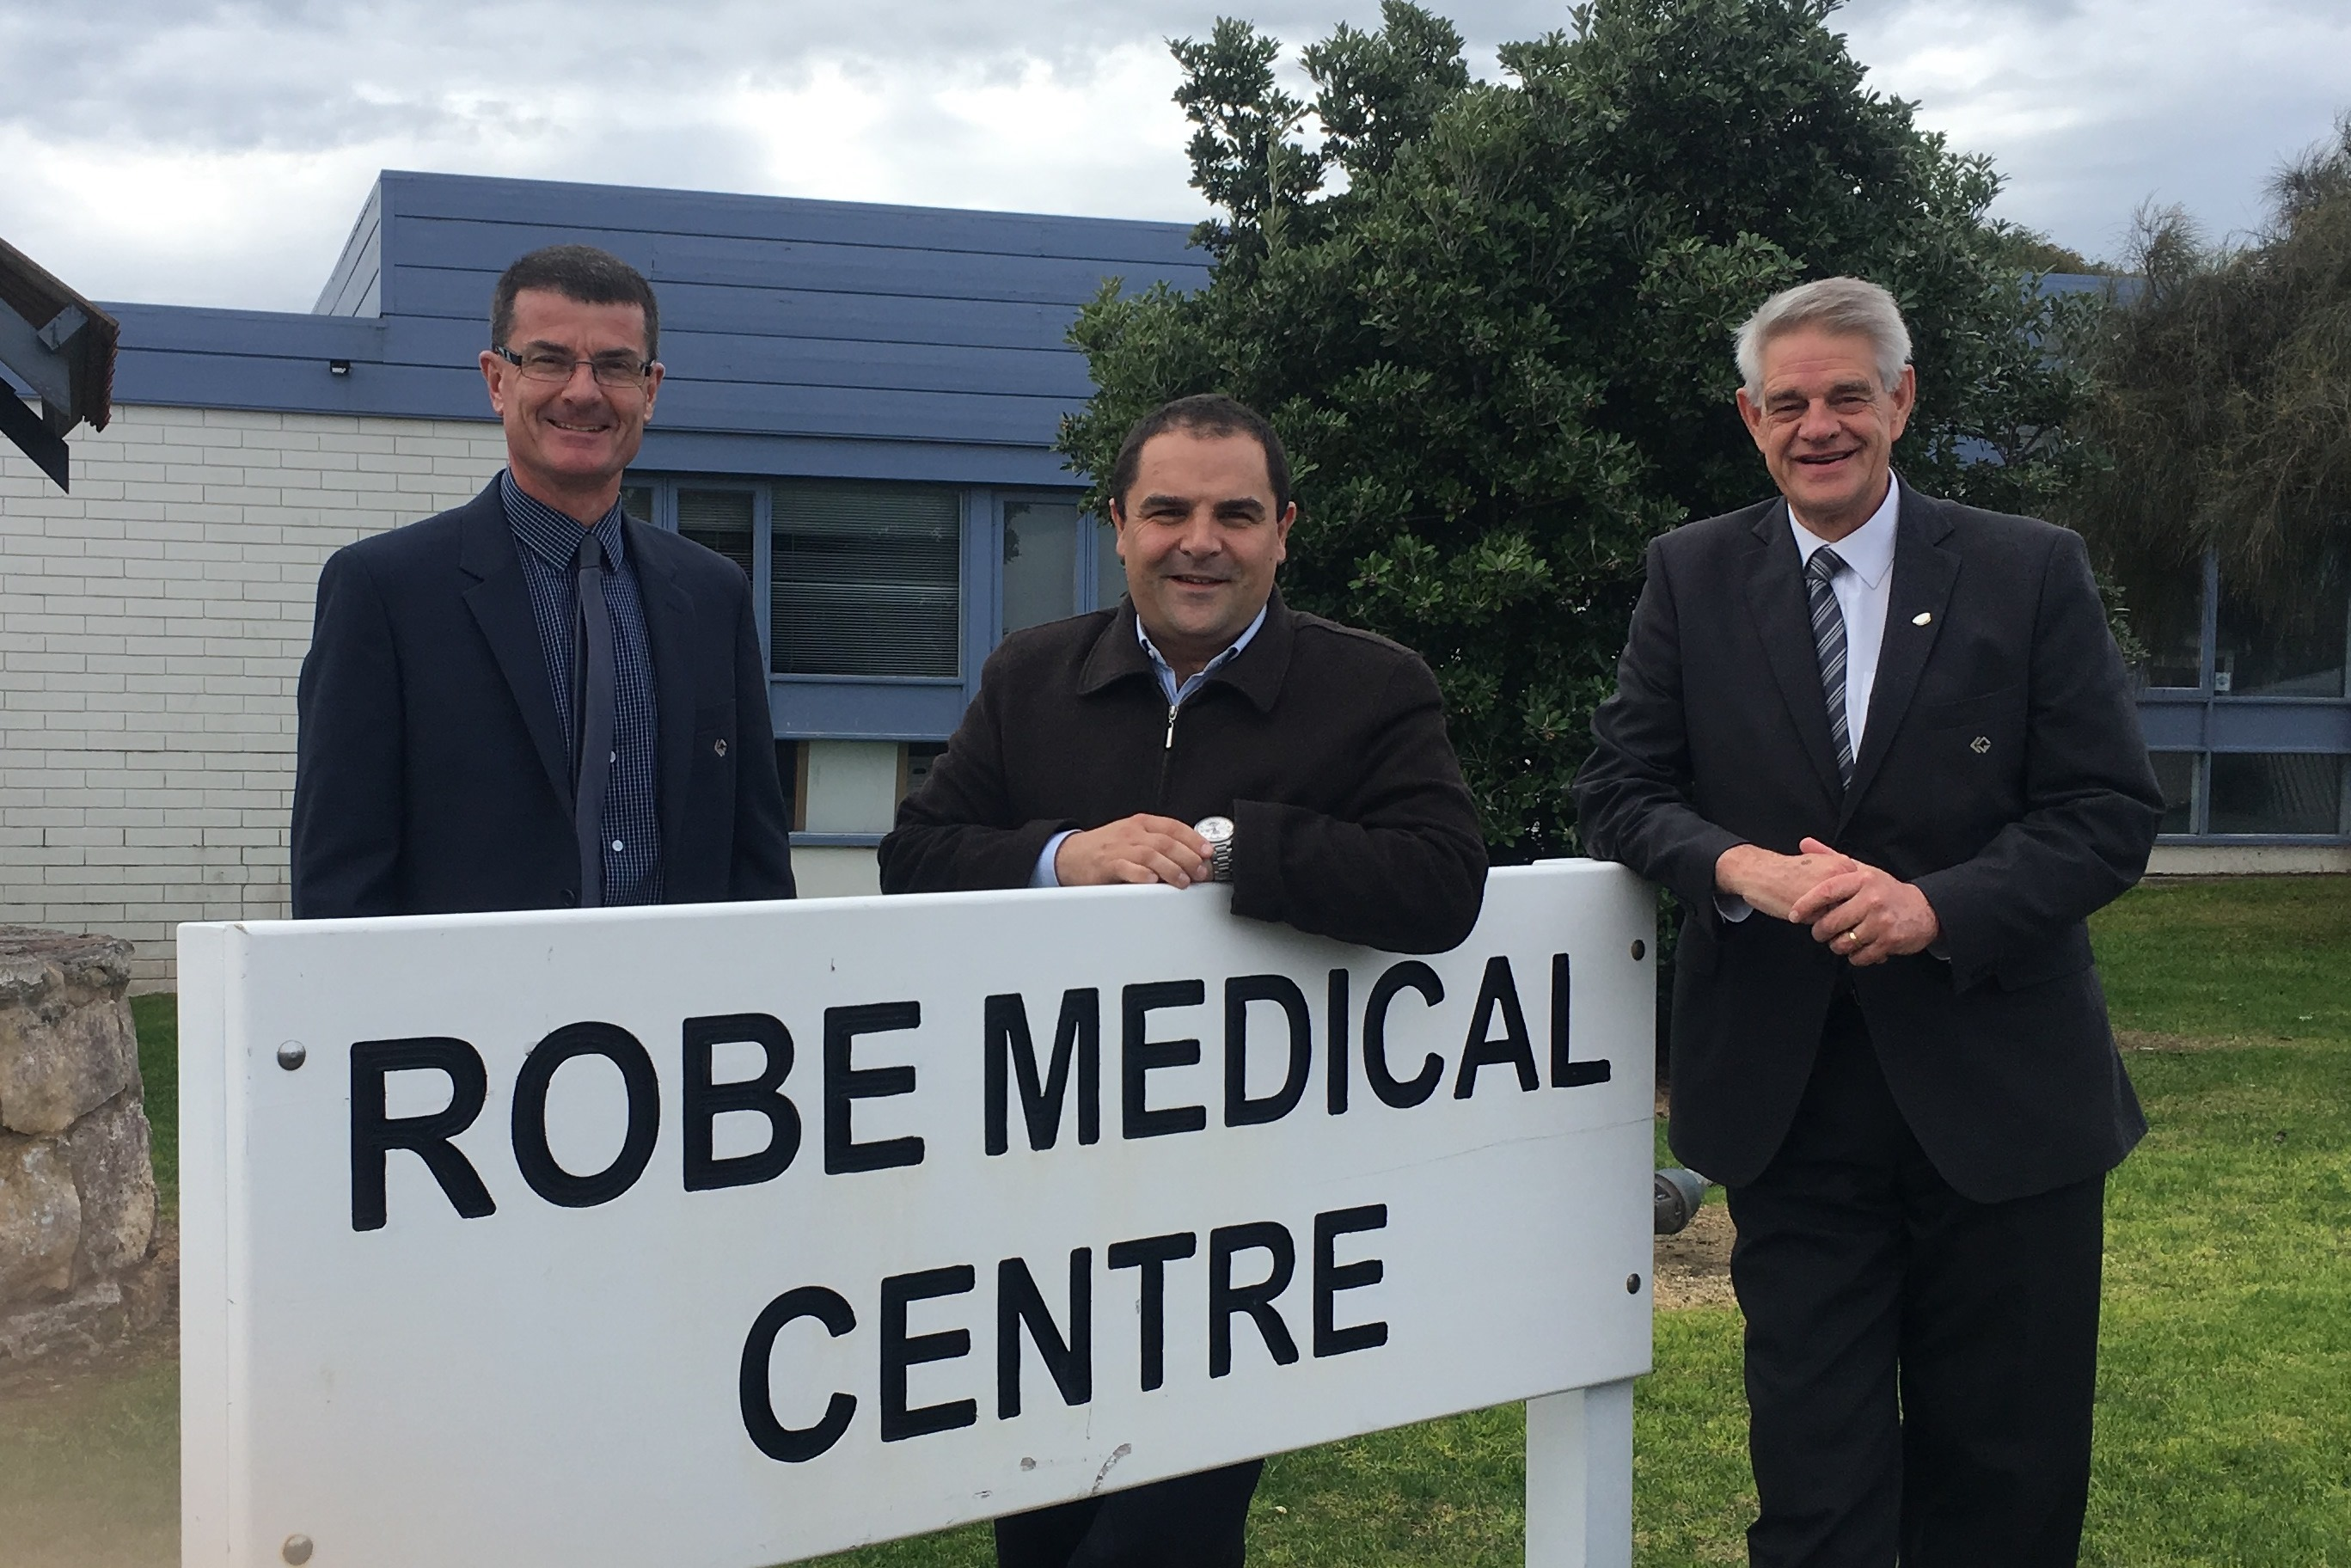 Grants to boost General Practice in Robe